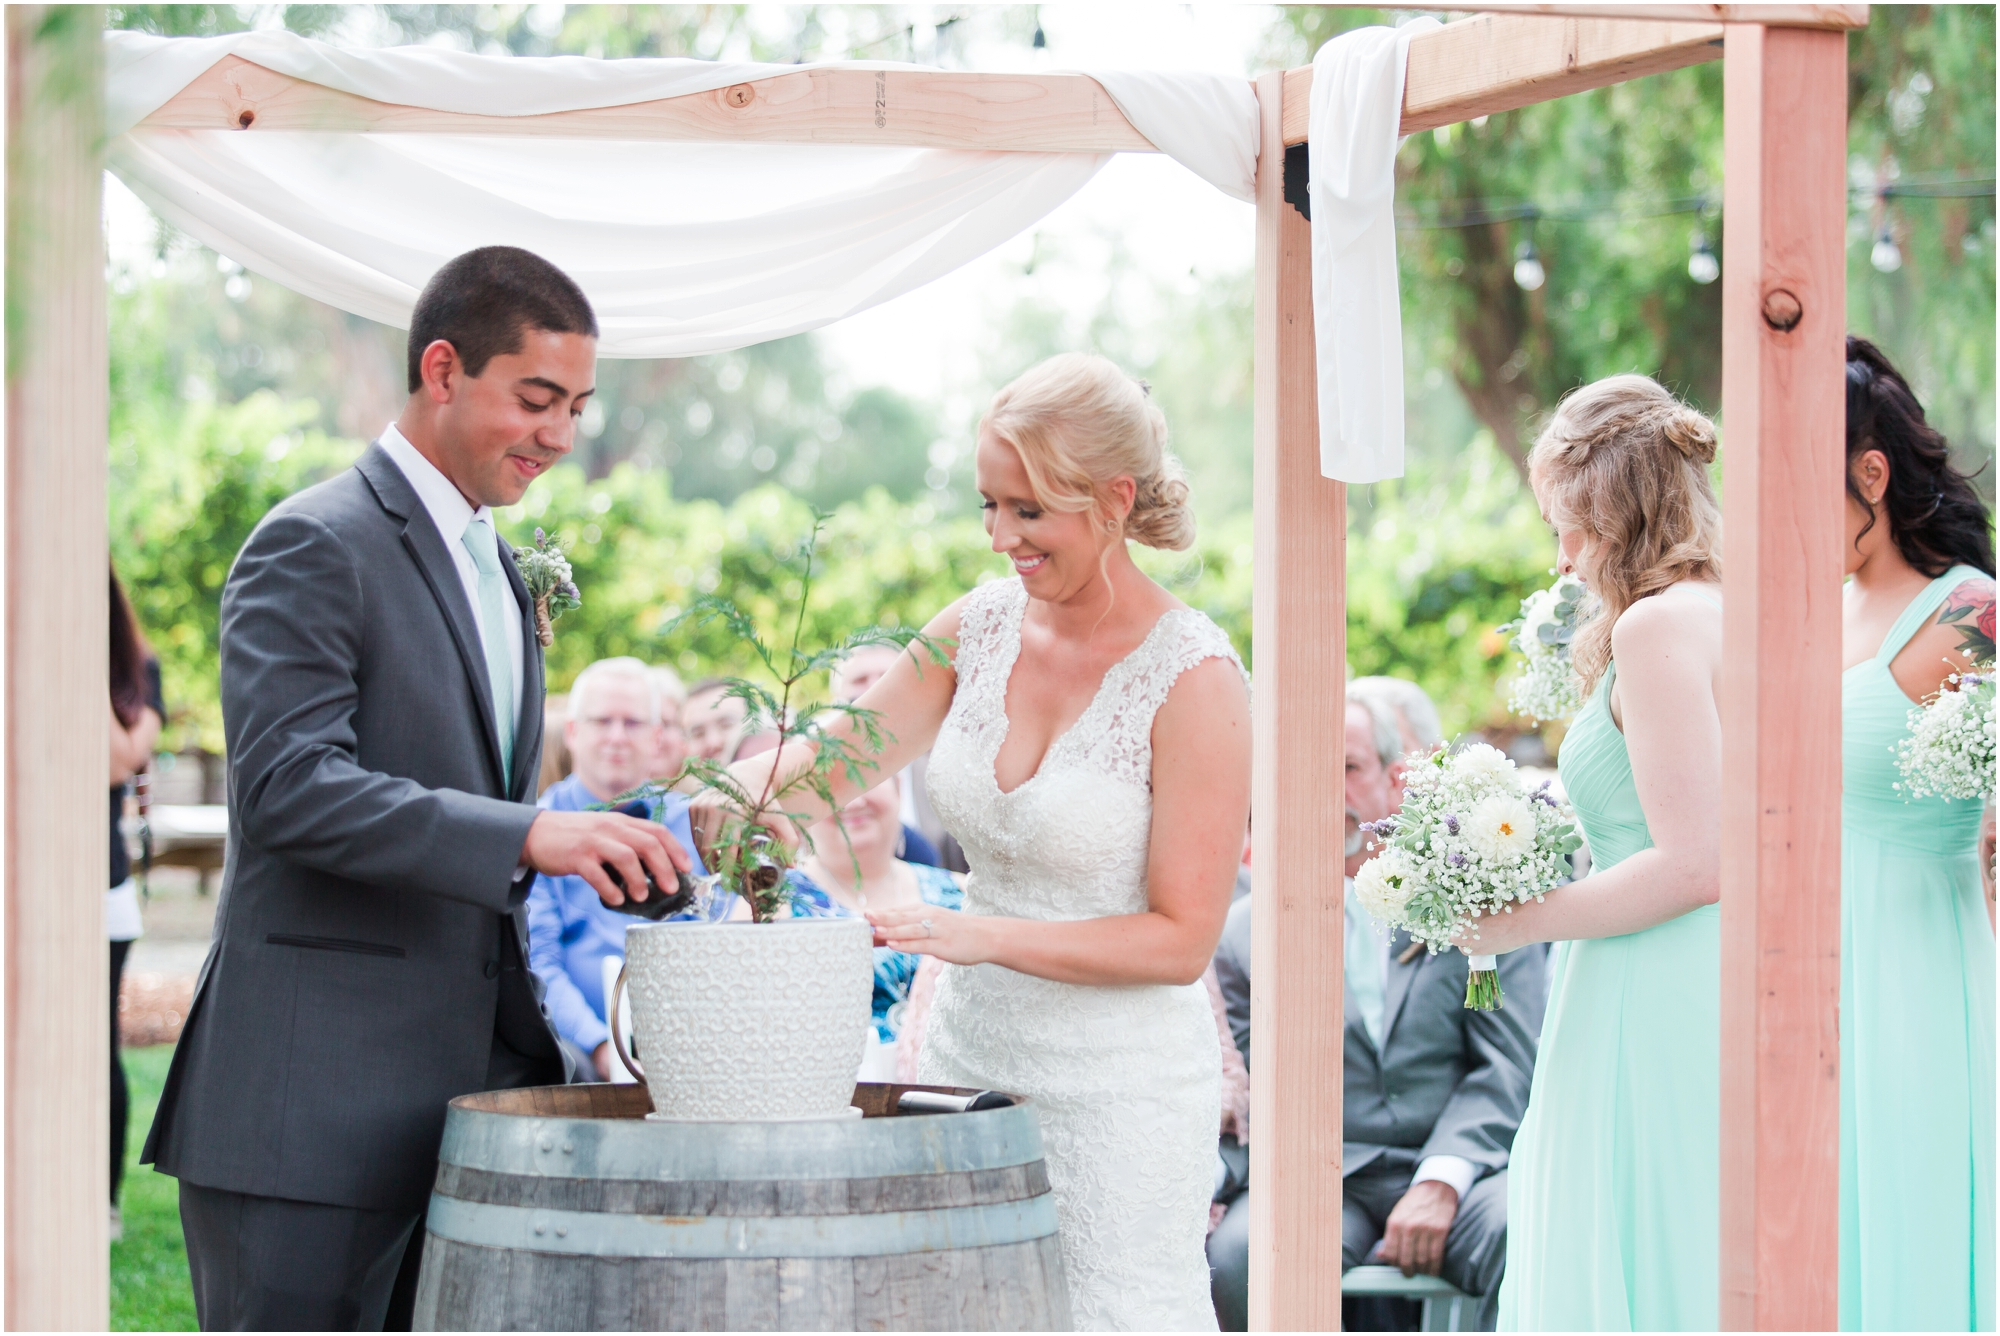 Retzlaff Winery wedding pictures by Briana Calderon Photography_2314.jpg